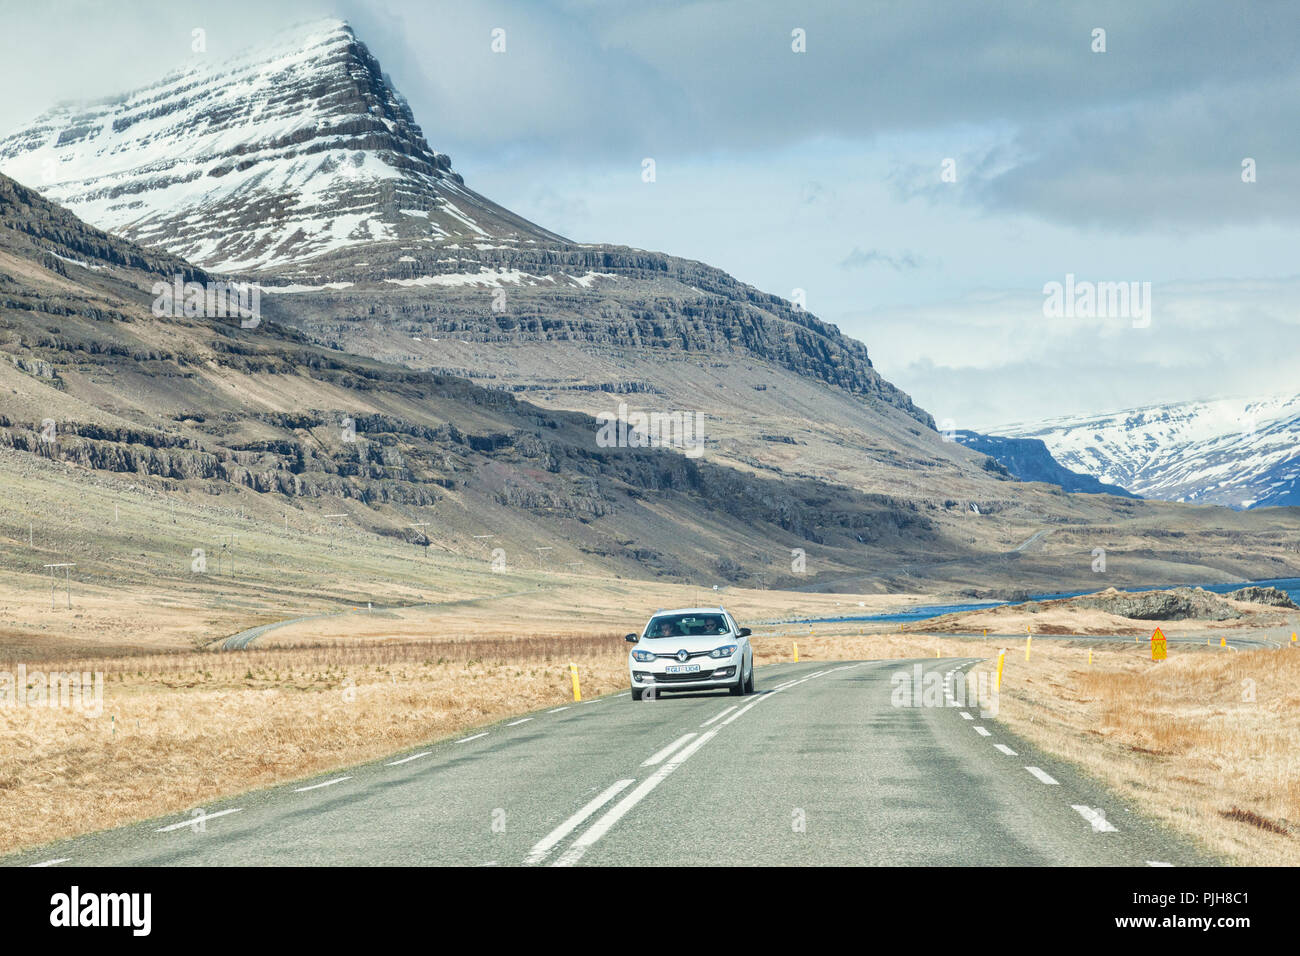 28 April 2018: South Iceland - Through the windscreen shot of the Iceland Ring Road in South Iceland, driving through snowy mountain scenery... Stock Photo